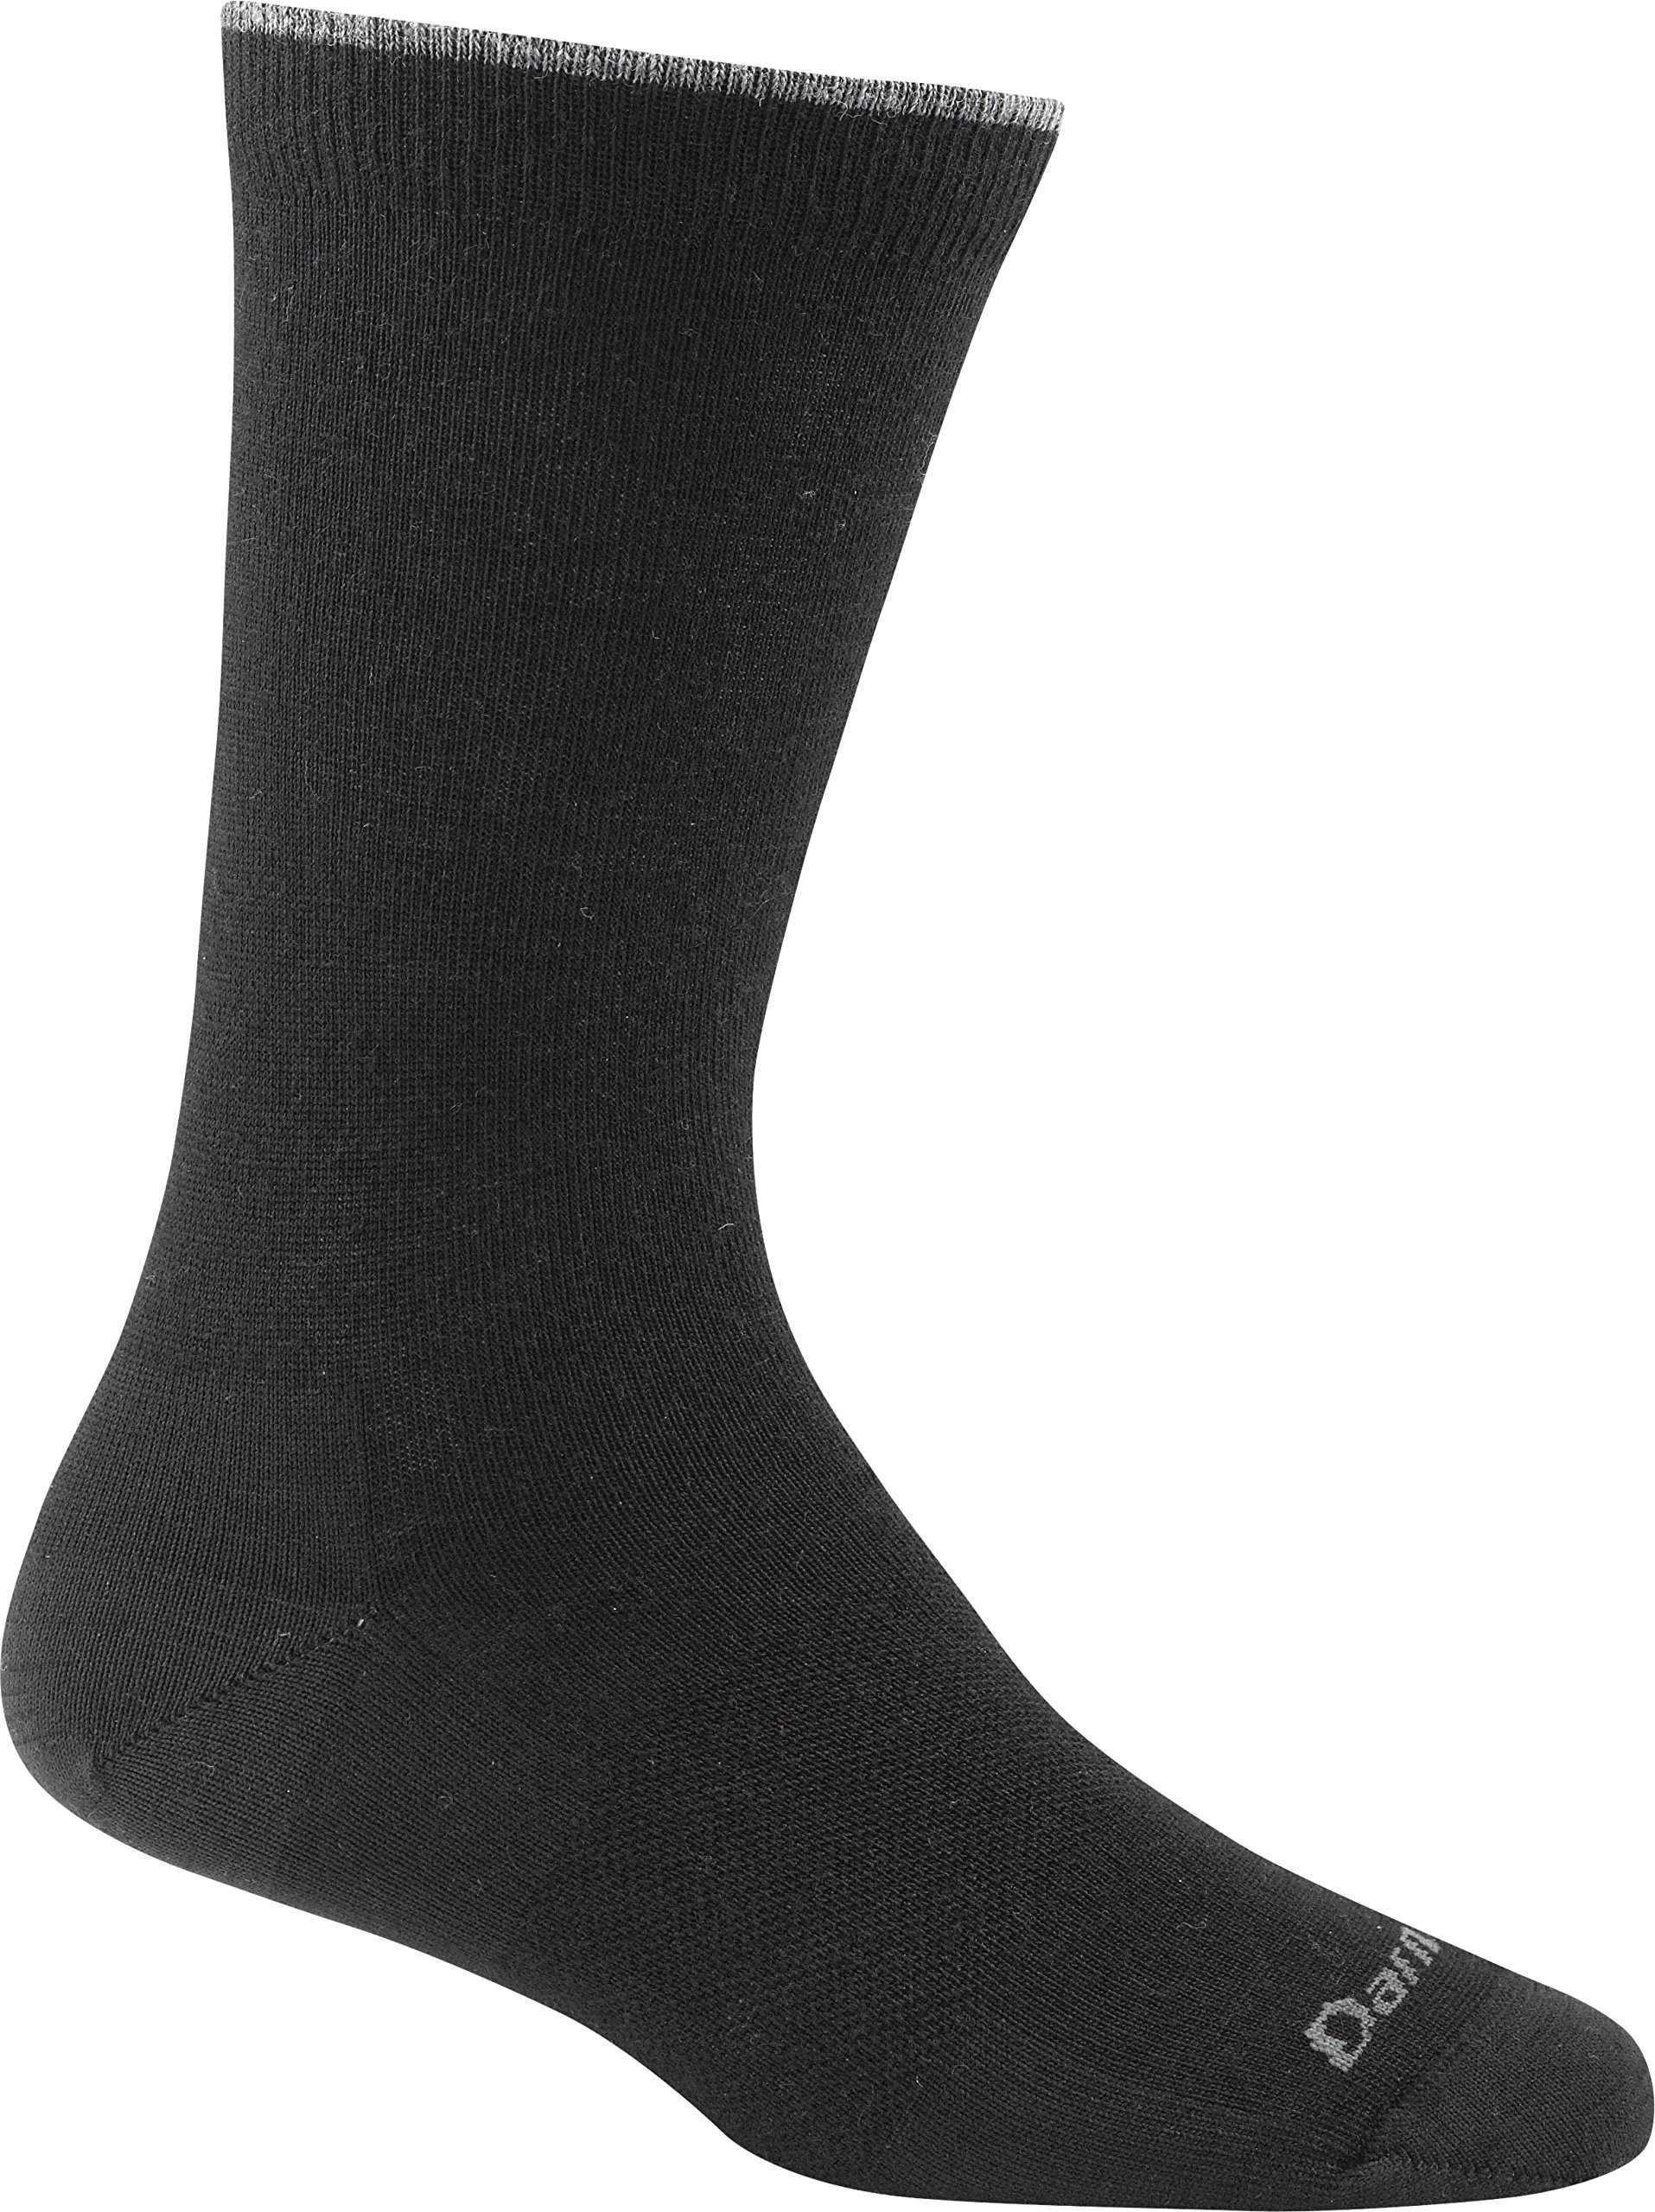 Darn Tough Women's Merino Wool Solid Basic Crew Light Socks, Black, Small - 6 Pack Special Offer by Darn Tough